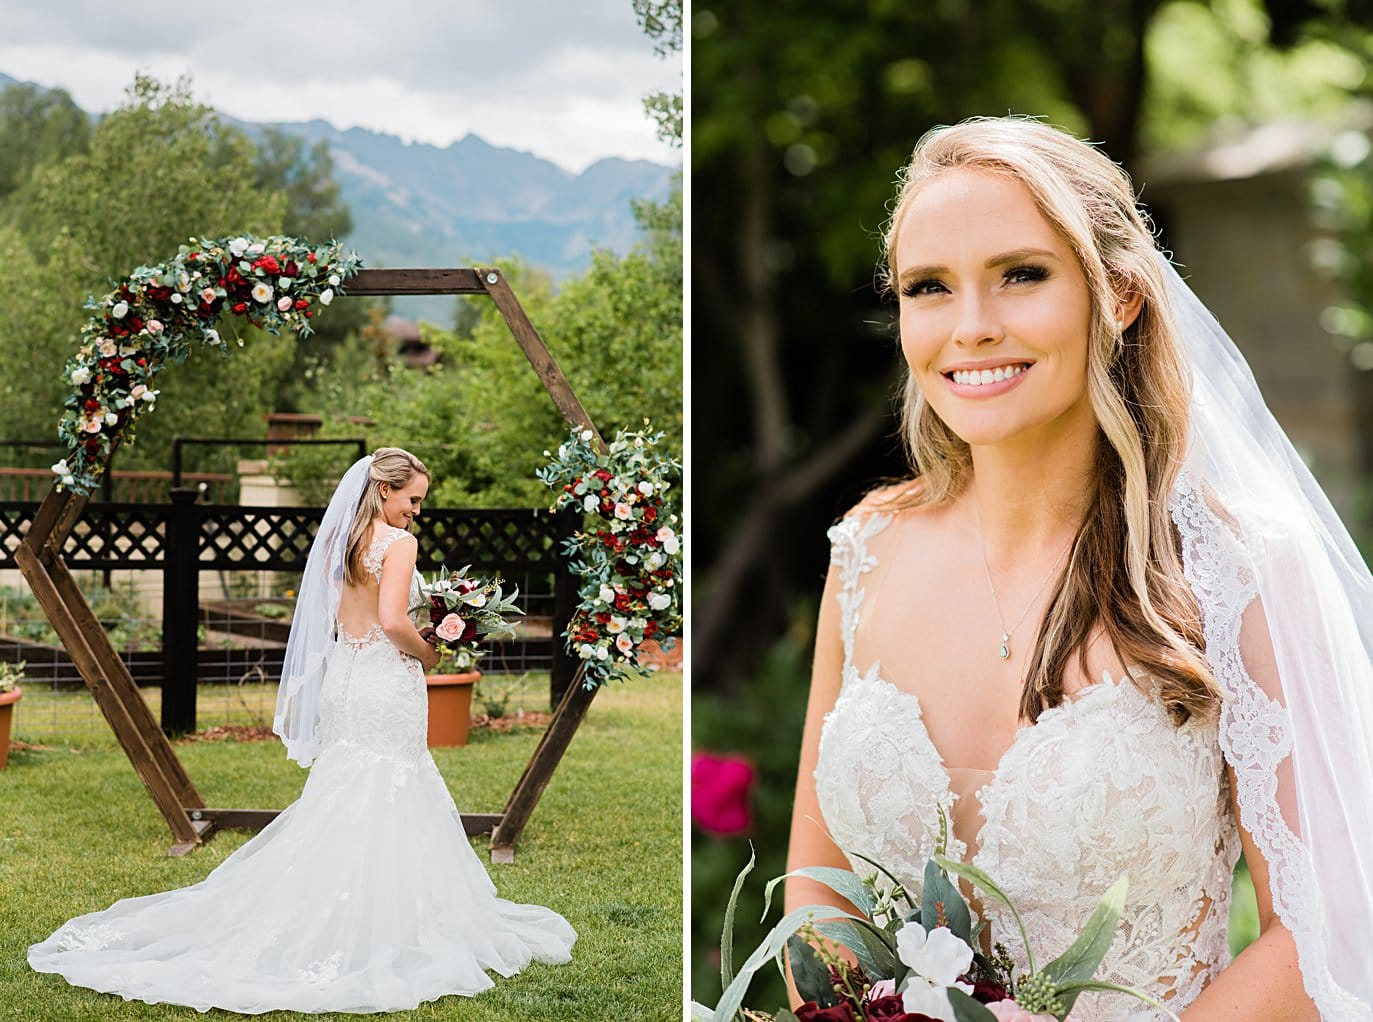 bride in front of ceremony arch with bold flowers at Larkspur Vail Wedding by Breckenridge Wedding photographer Jennie Crate